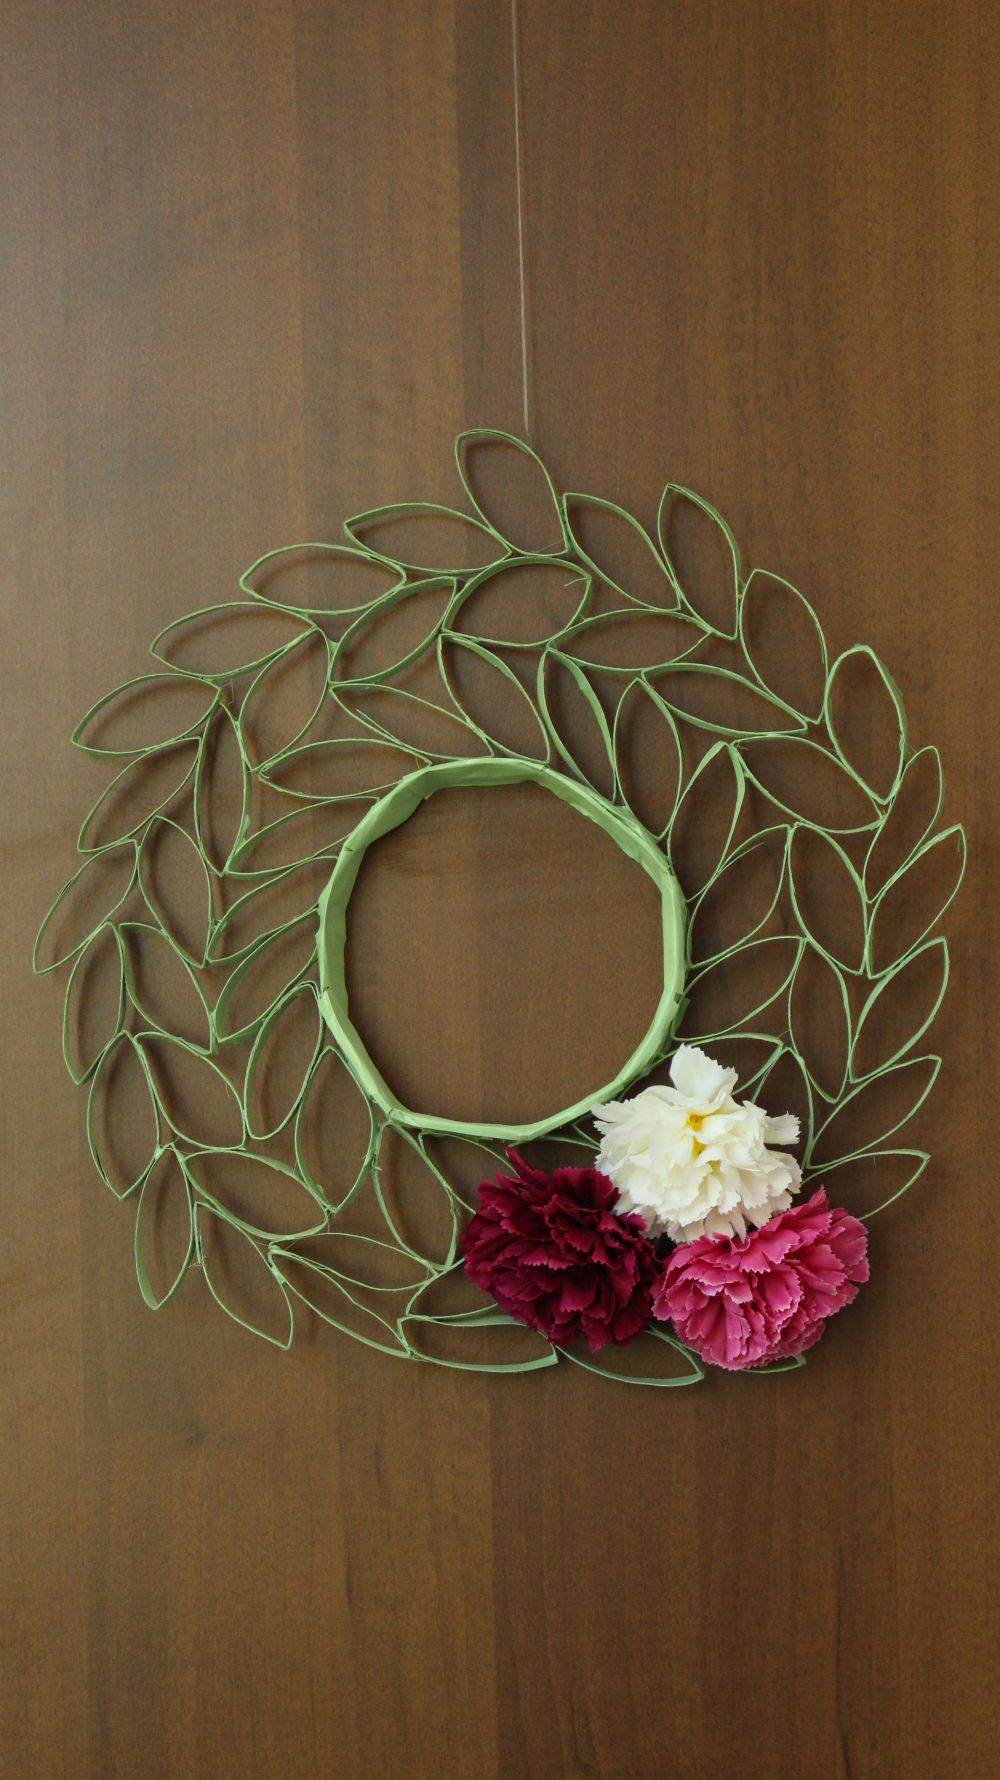 How To Make A Wreath From Toilet Paper Rolls